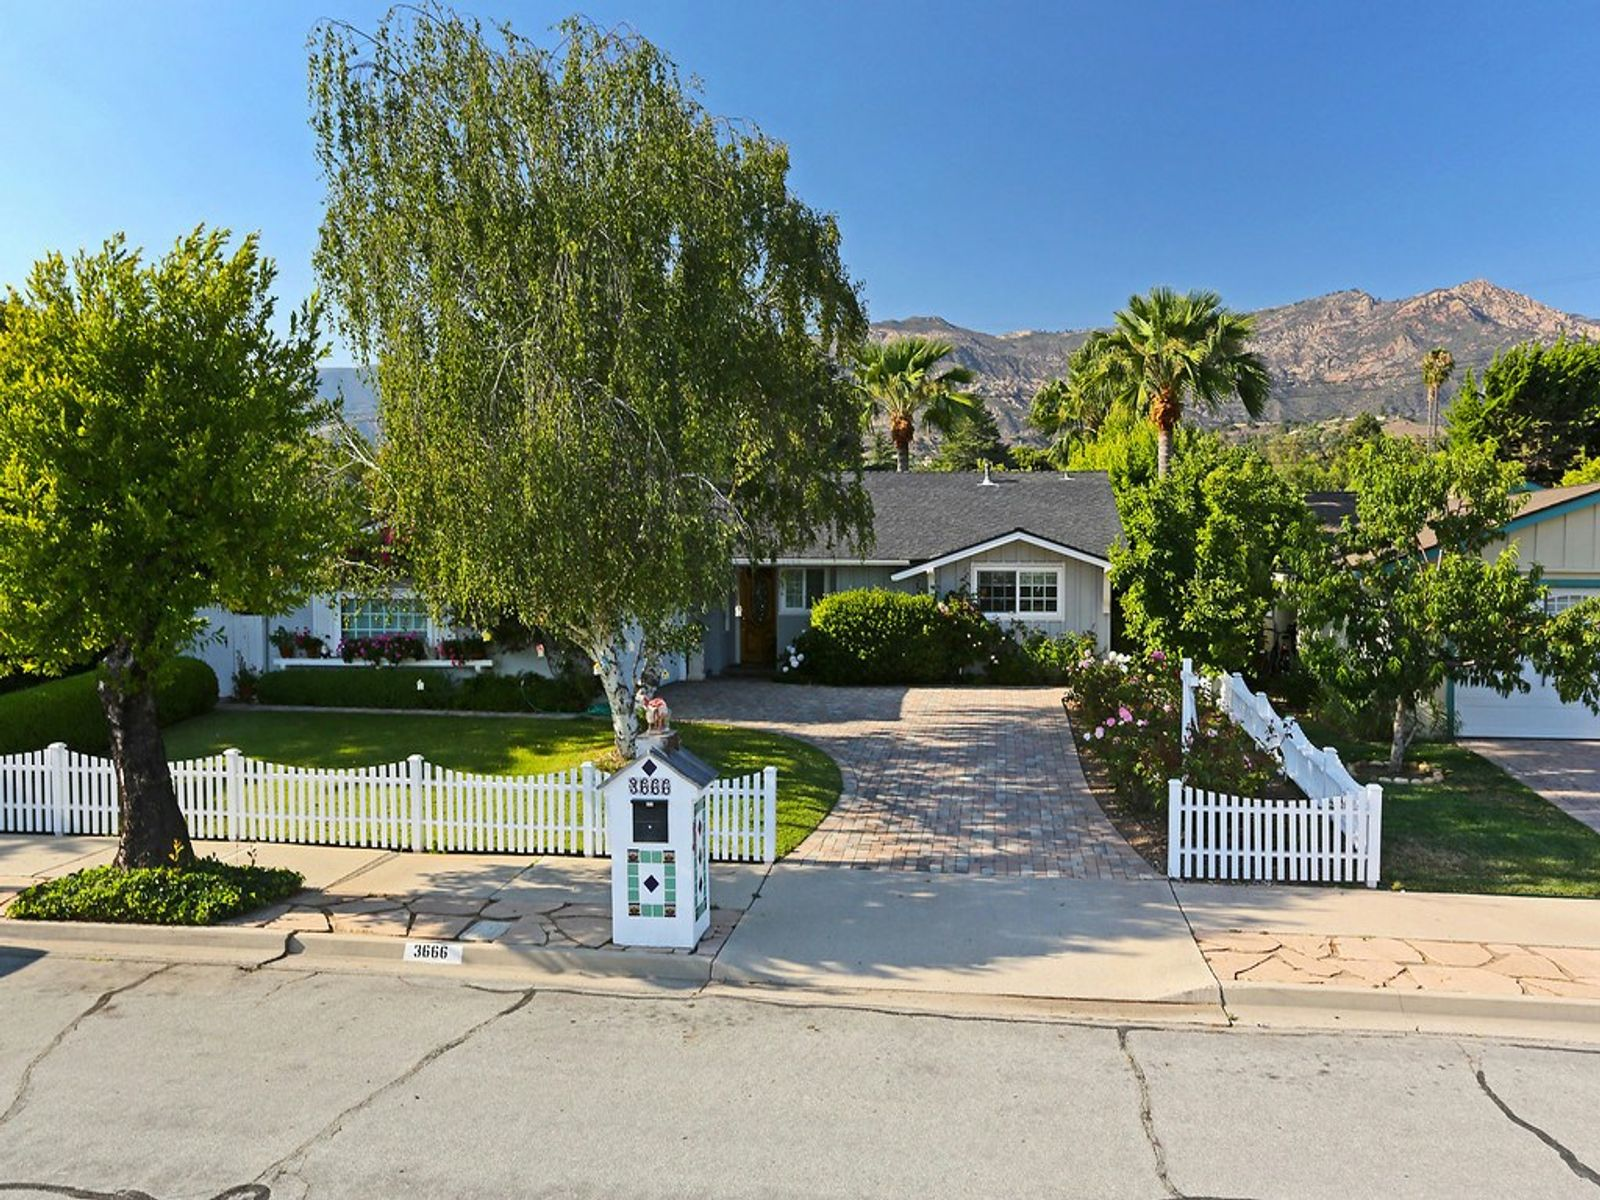 Charming San Roque Cottage, Santa Barbara CA Single Family Home - Santa Barbara Real Estate